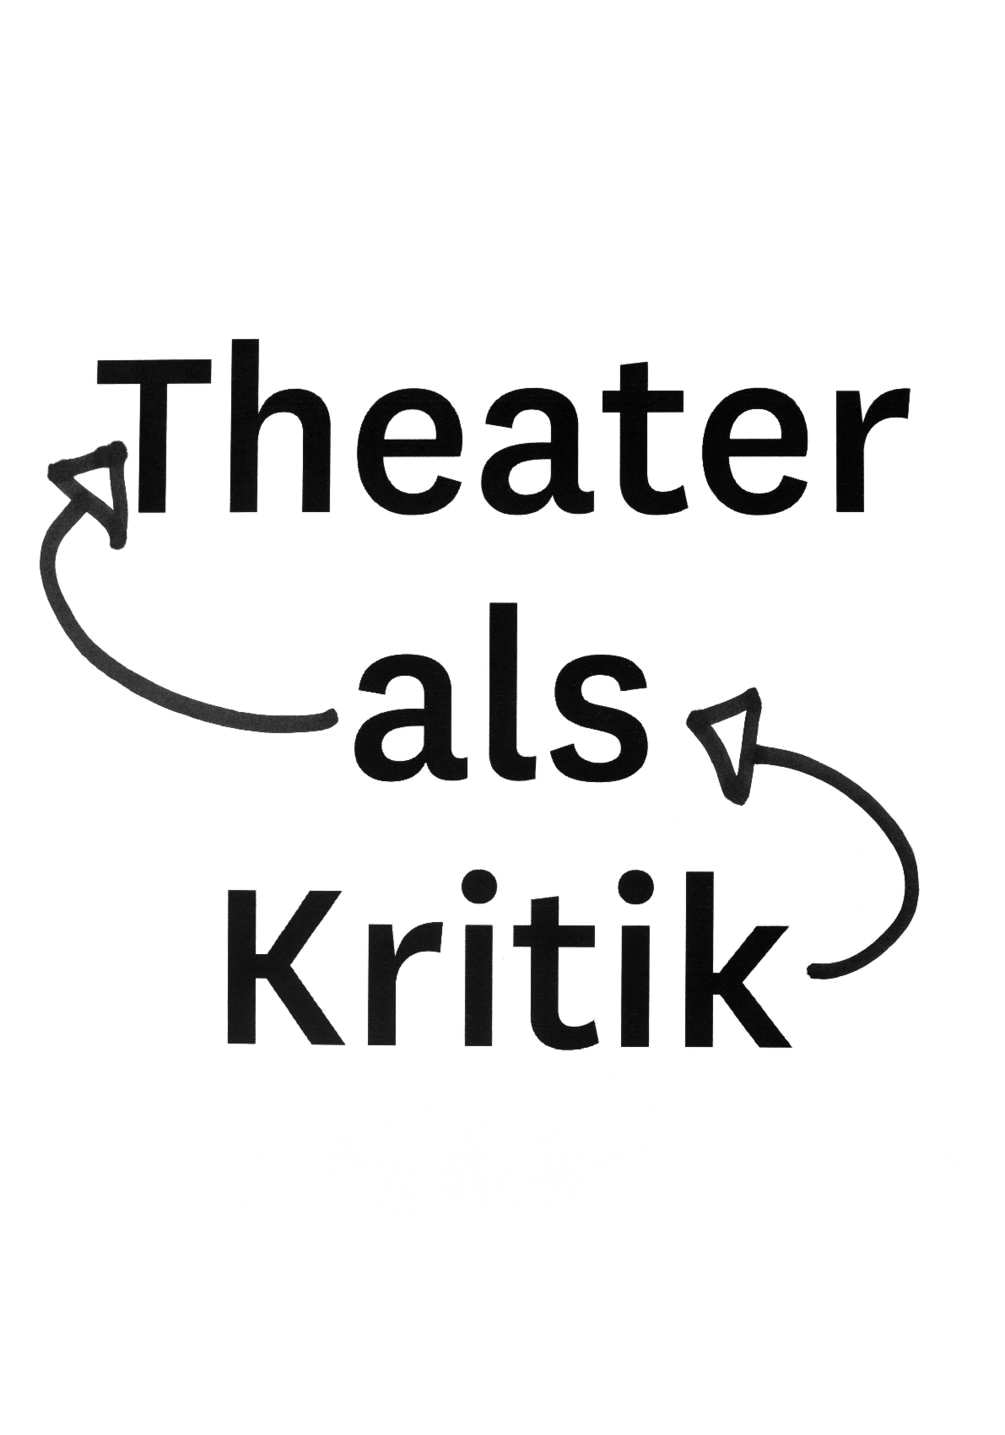 theater-as-critique-slip-22-1005x1435px